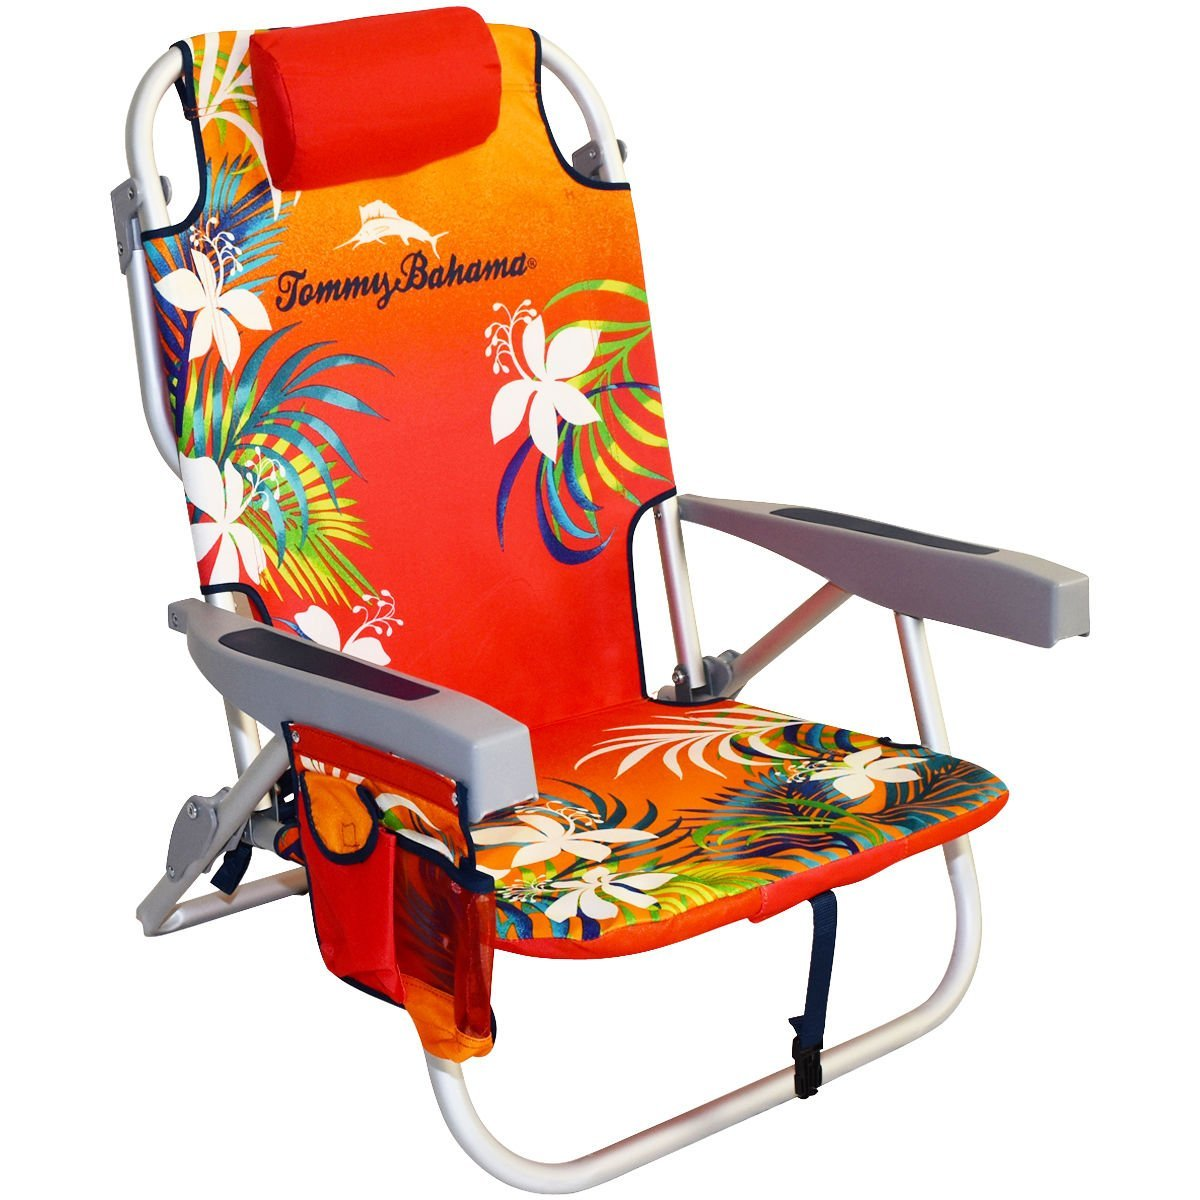 Thumbnail for Tommy Bahama Heavy Duty Beach Chair Review and Sale - Best Heavy Duty Stuff